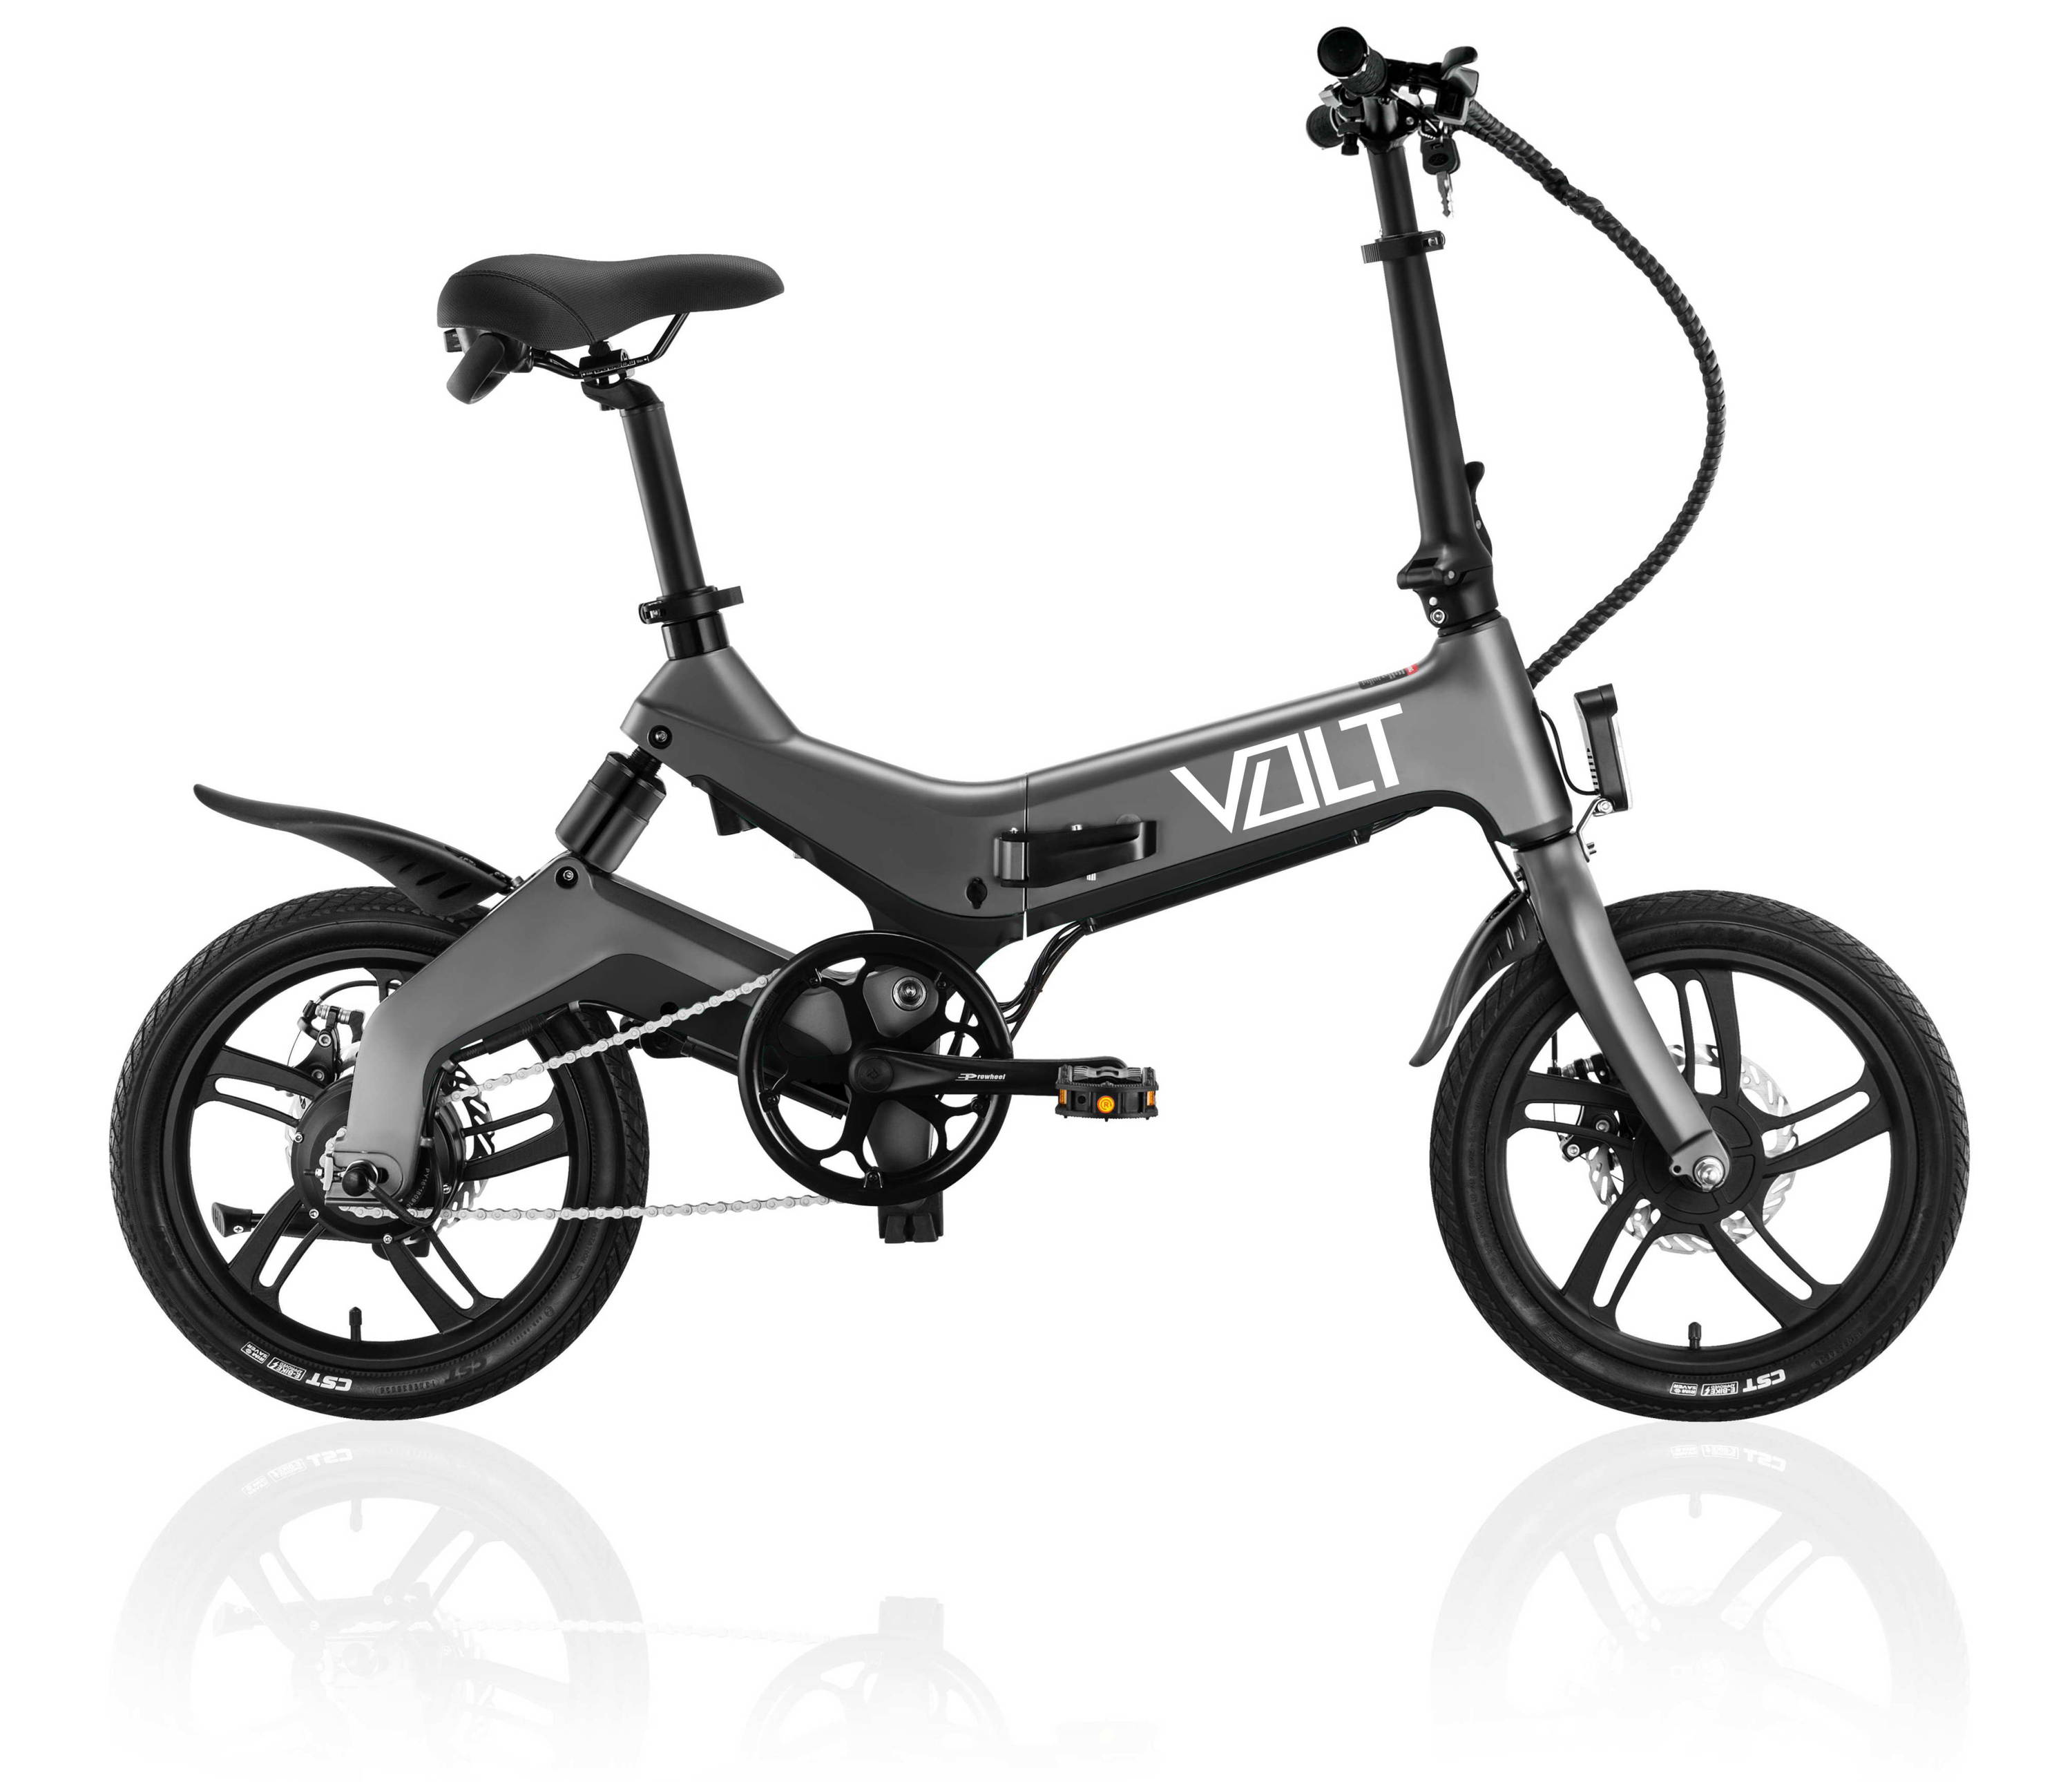 VOLT mate urban electric bicycle in gunmetal grey colour. VOLT e-bikes has 5 exciting colours and finishes. VOLT ebicycle with built in front and rear bike lights. VOLT Mate Australian ebike has rear suspension and rear mounted 250w motor. VOLT pedal assist bikes and VOLT pedalecs.